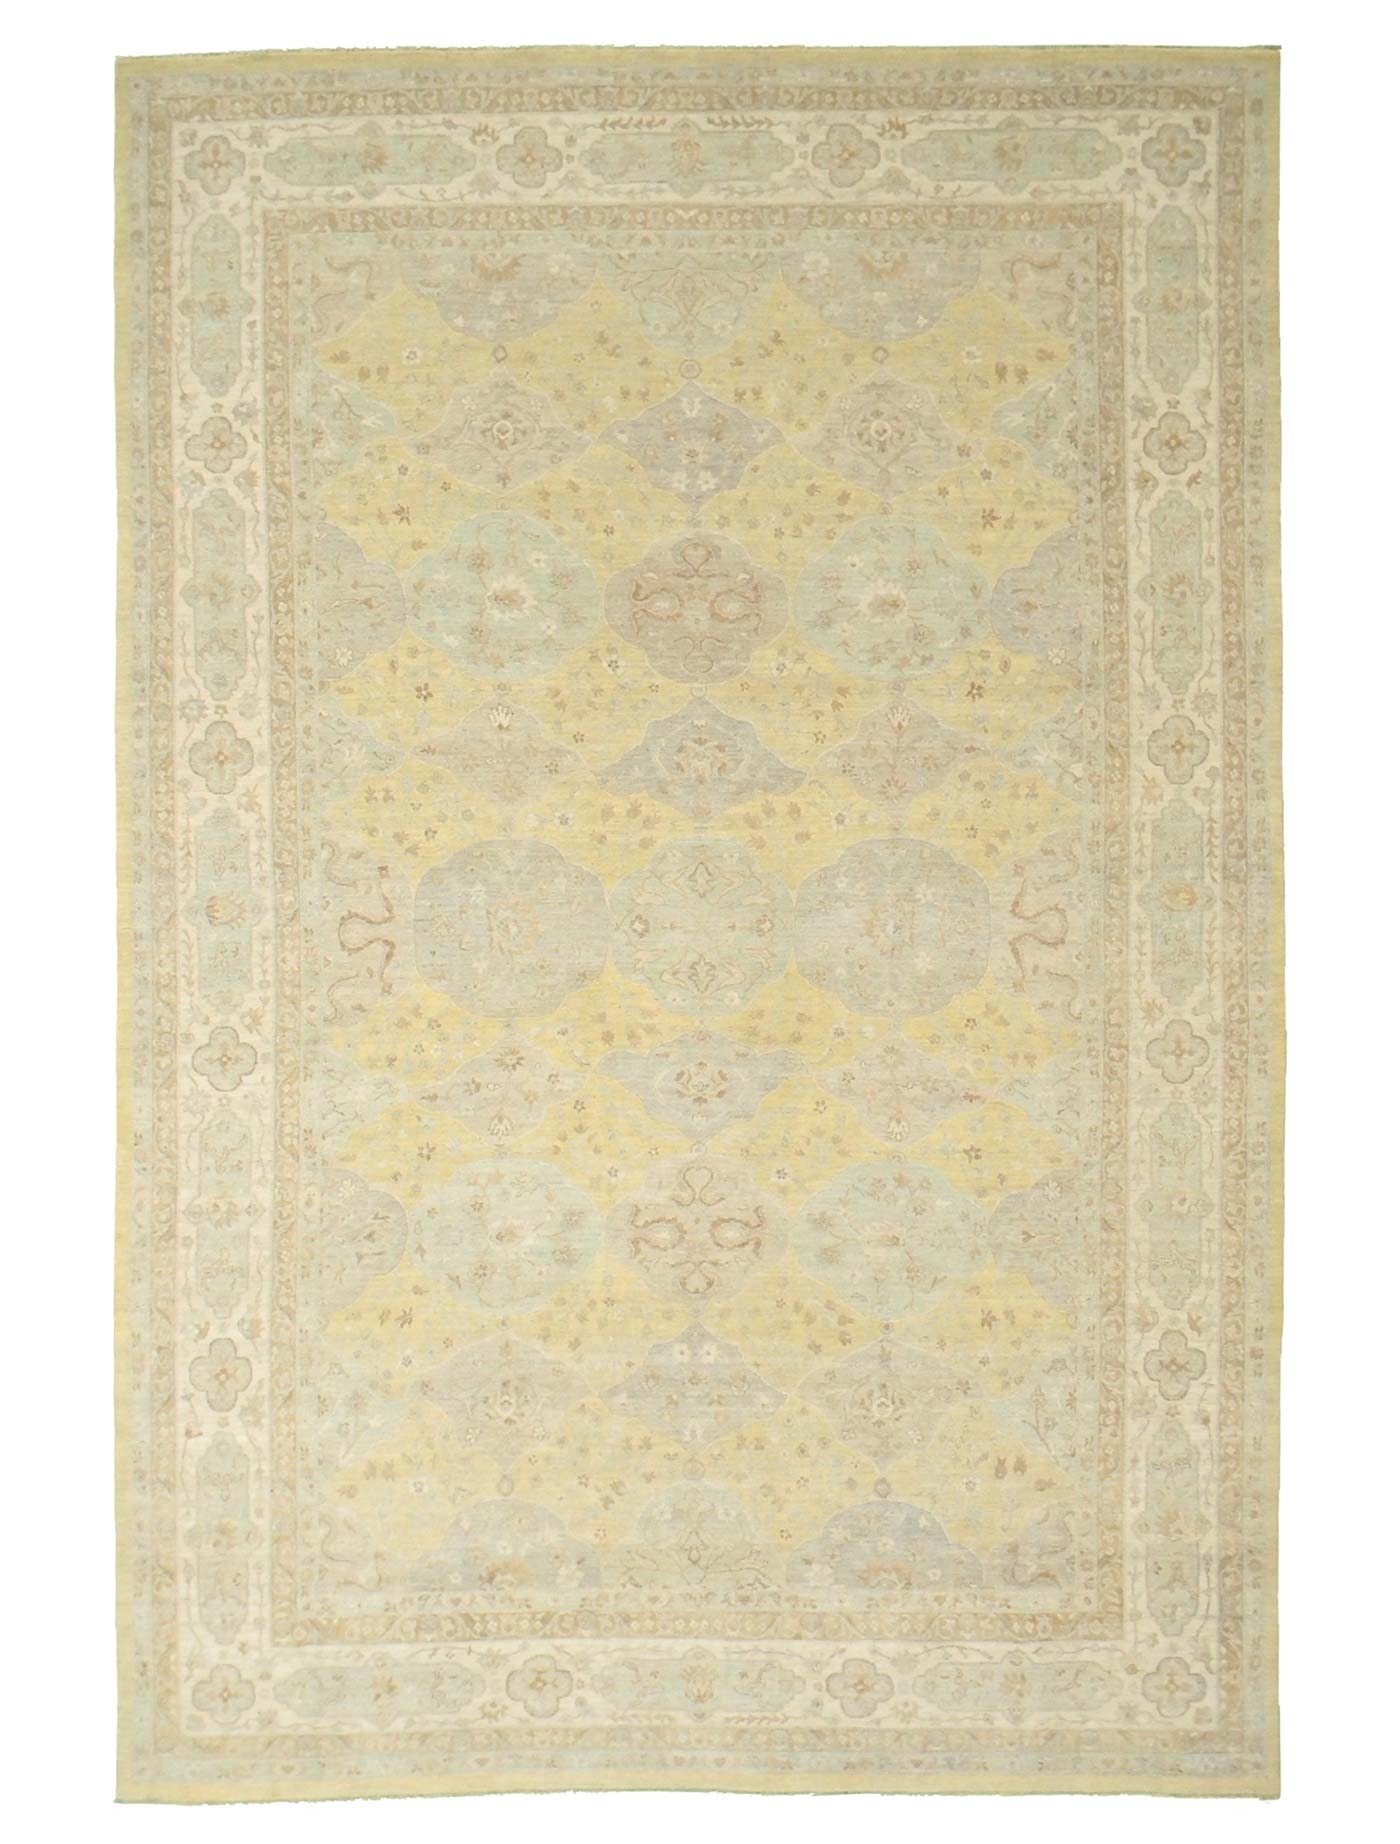 Pakistan Wool With Pure Silk Ae Rugs Inc Regarding Wool And Silk Area Rugs (#12 of 14)